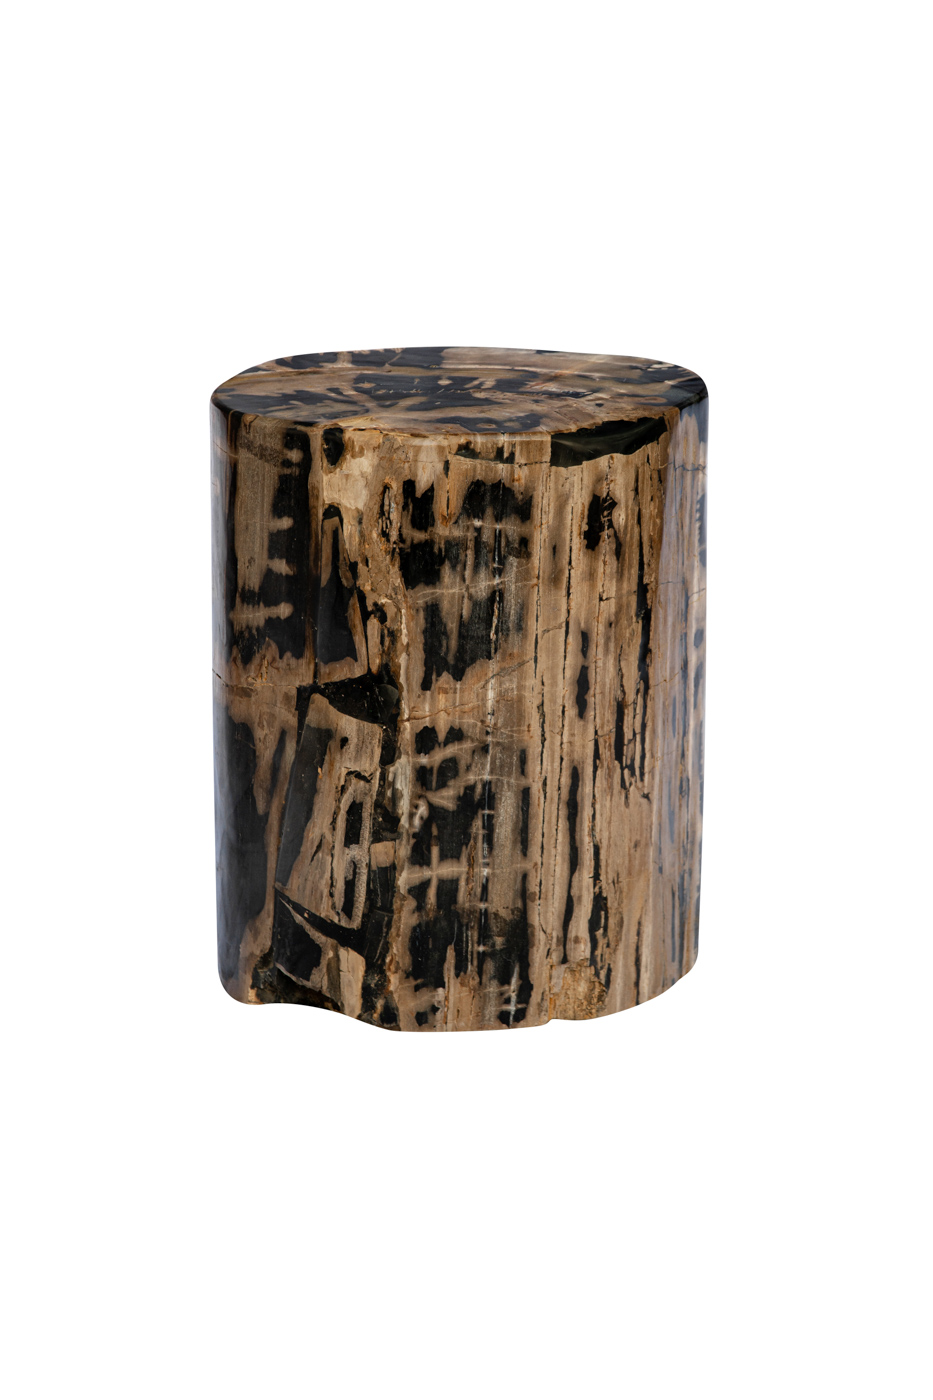 Fossilized wood trunk with black betas